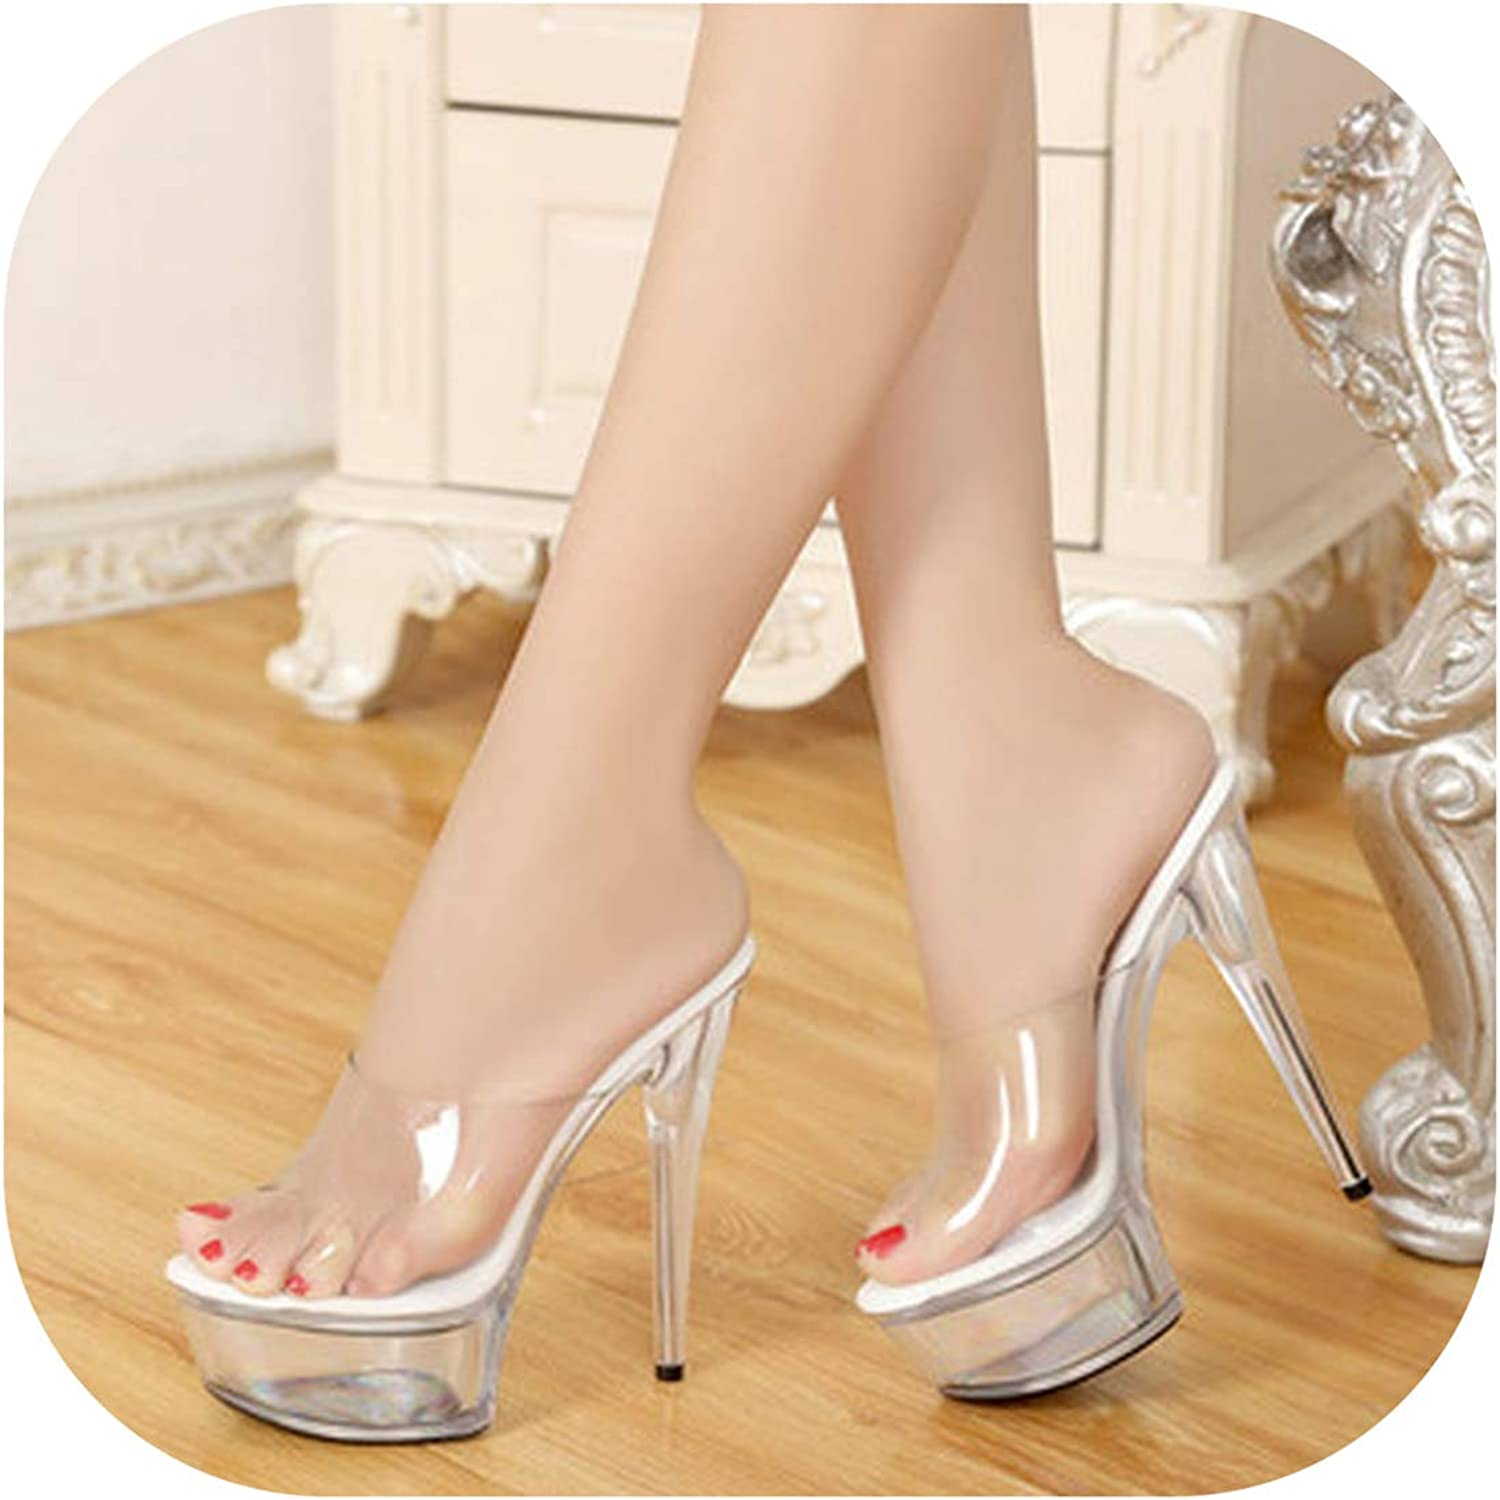 Perilla fire Female Model T Station Catwalk Sexy Crystal Transparent shoes 15CM High Heels Waterproof Head Sandals